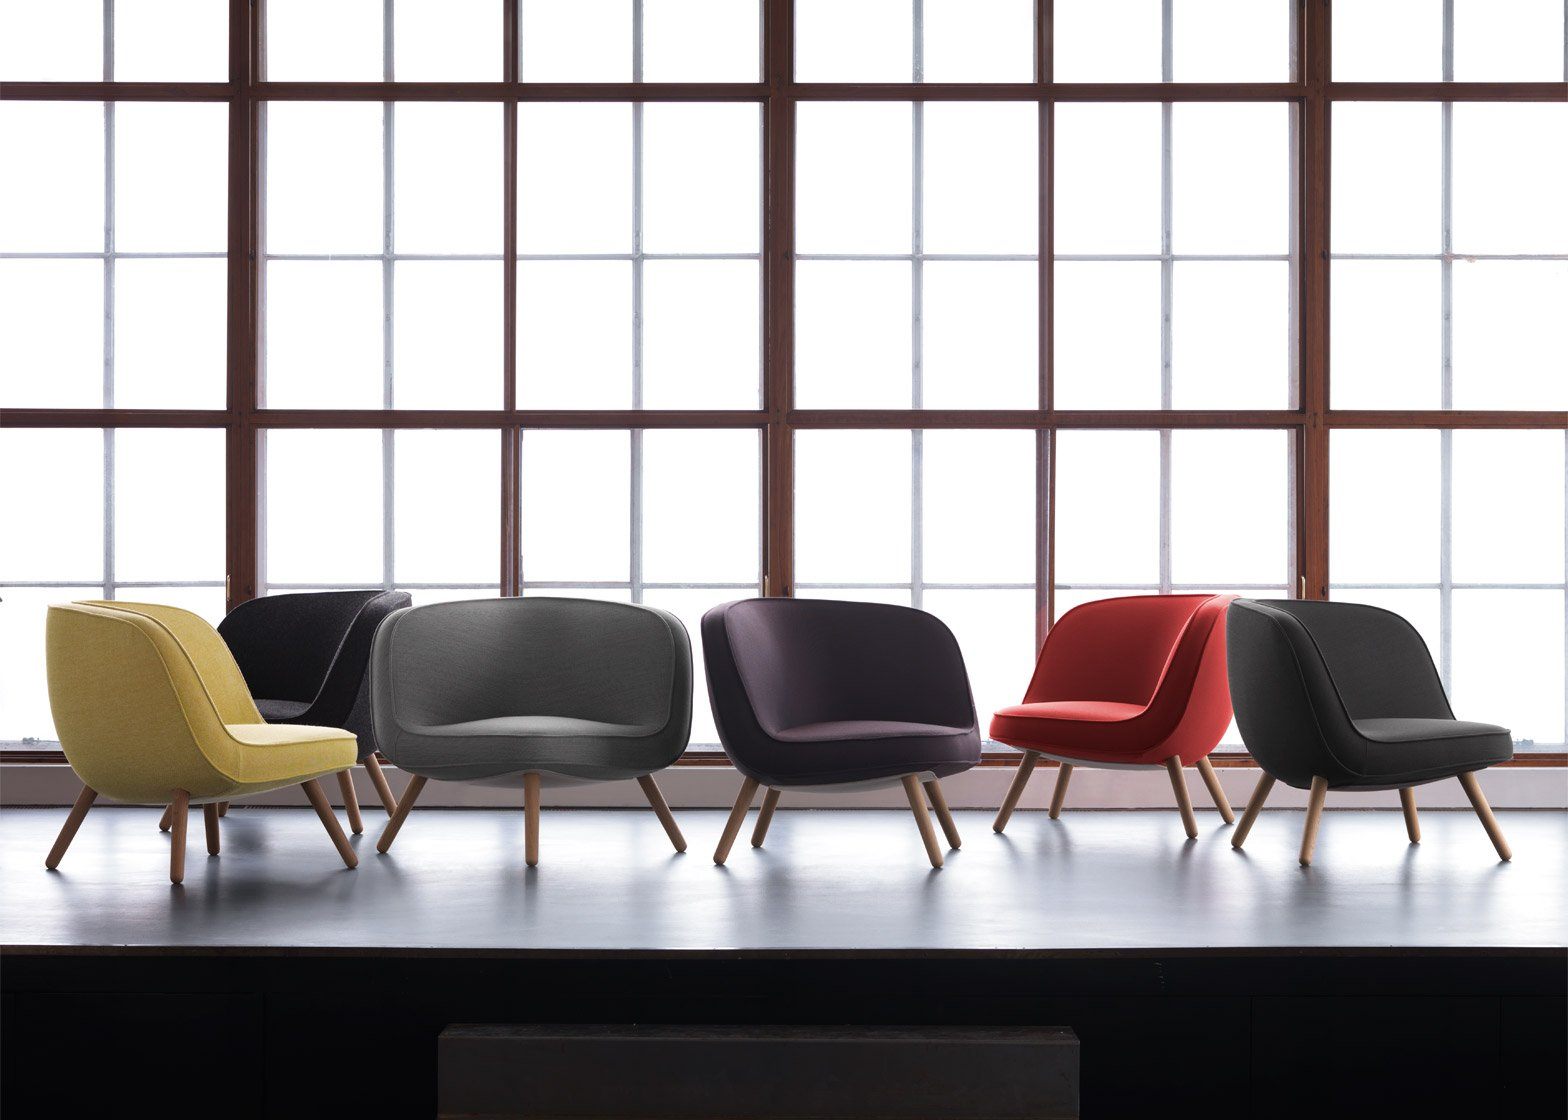 Via 57 lounge chair by Republic Fritz Hansen, KiBiSi and BIG